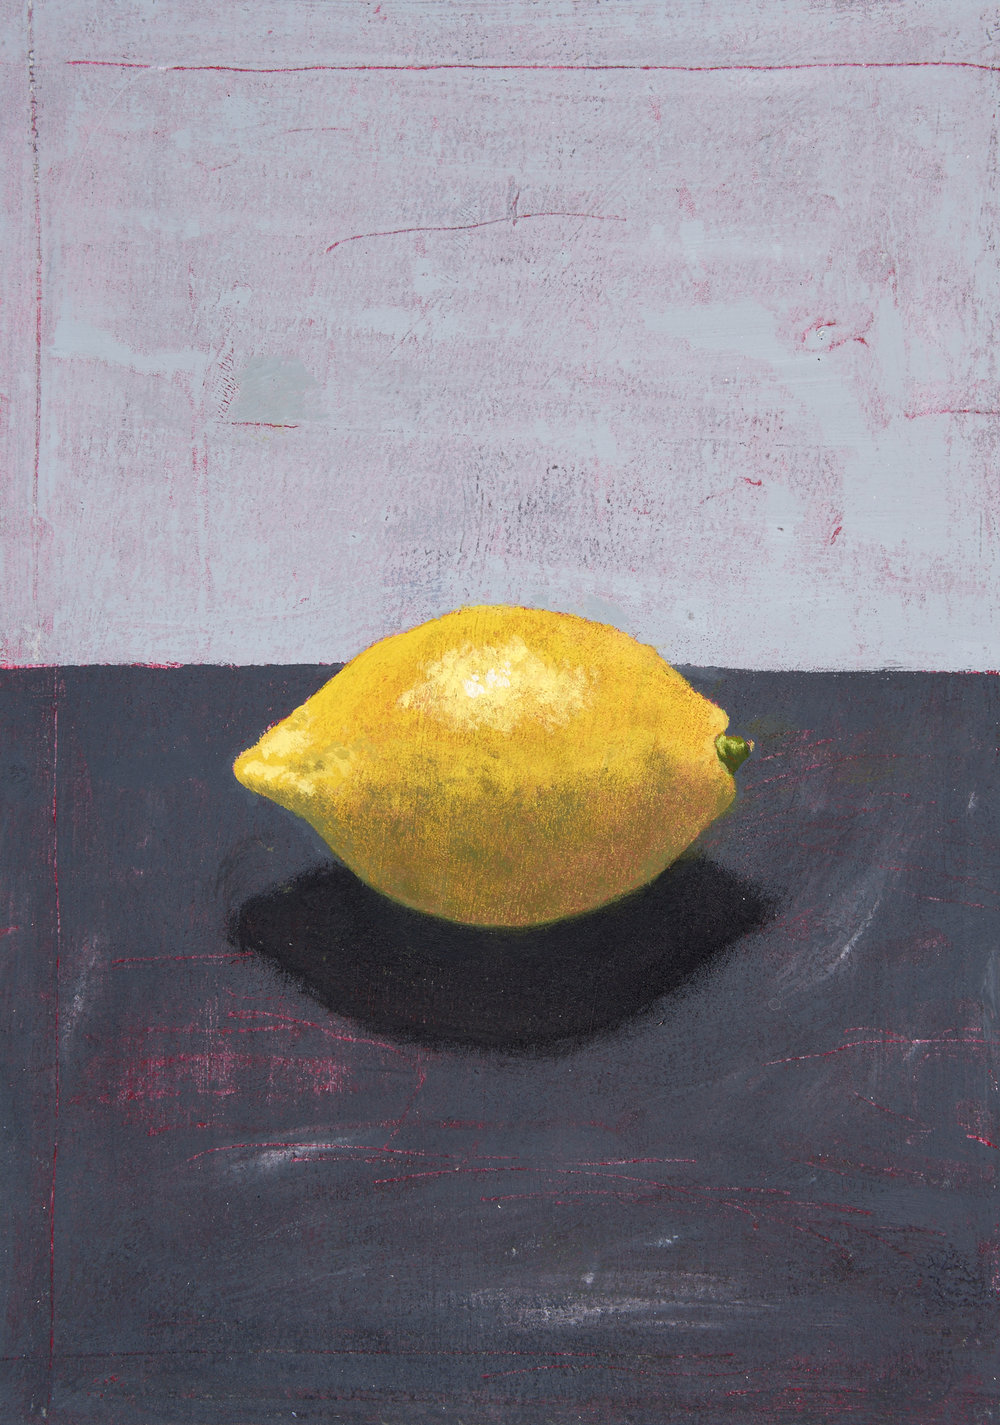 David Lyon Art - Lemon - 150dpi.jpg